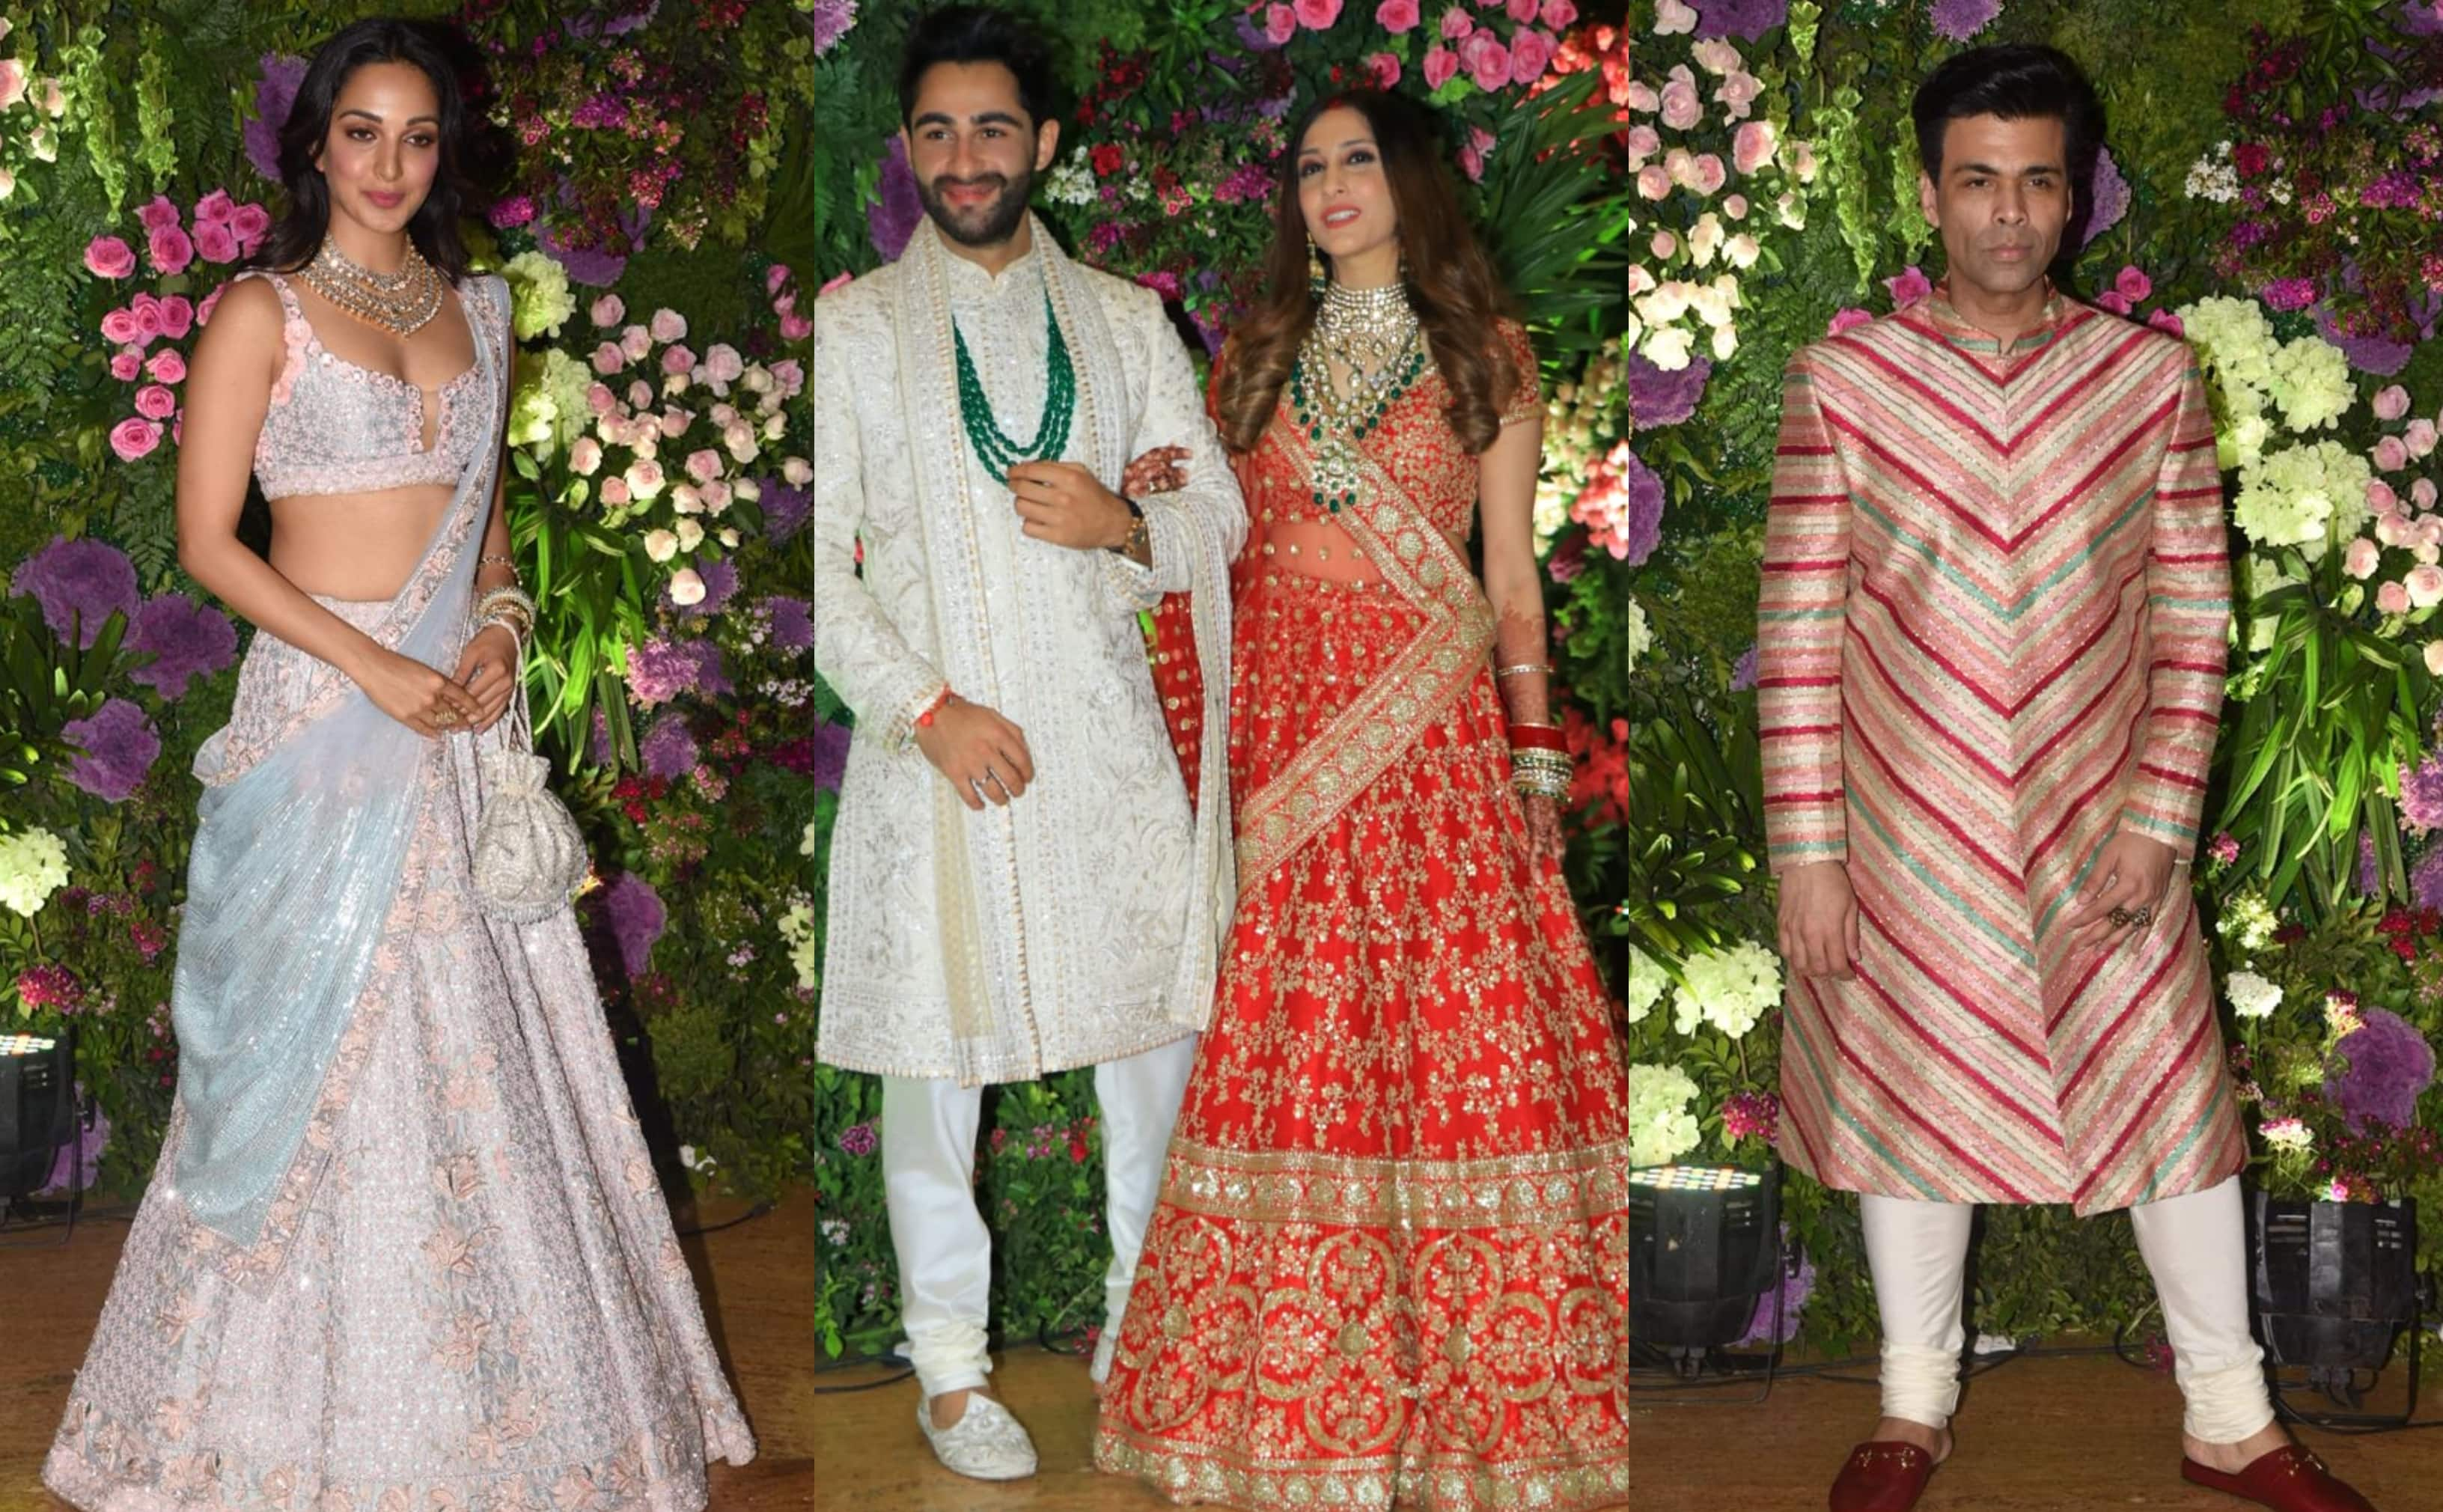 Armaan Jain Wedding Reception: Amitabh Bachchan, Karan Johar, Kiara Advani Bring The Bollywood Charm To Evening Among Others